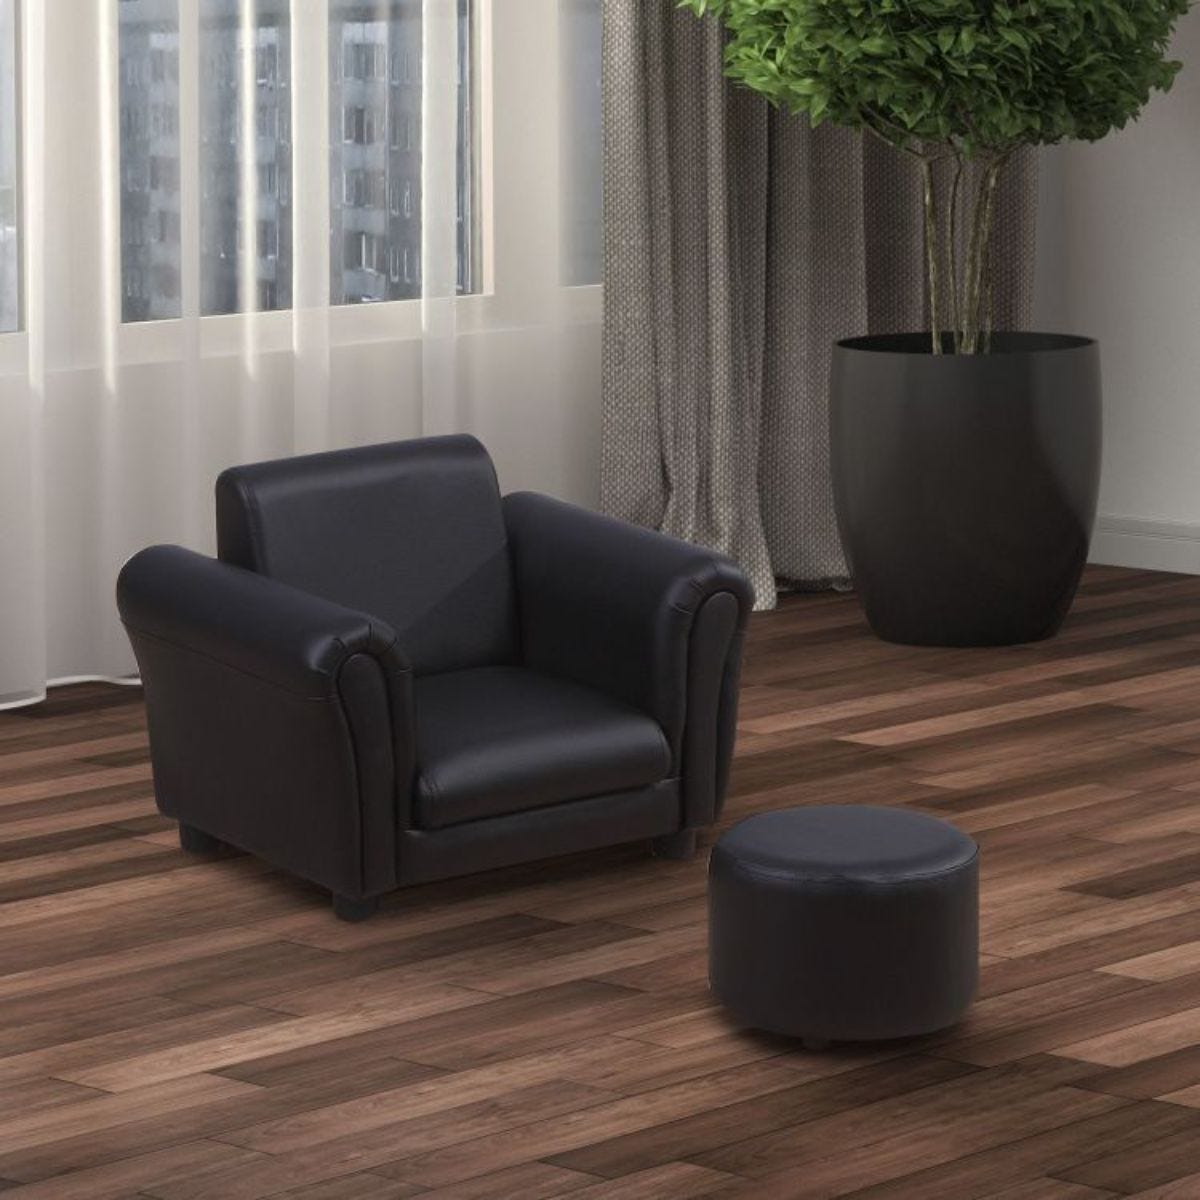 Two Piece Kids Armchair Set With Stool Black